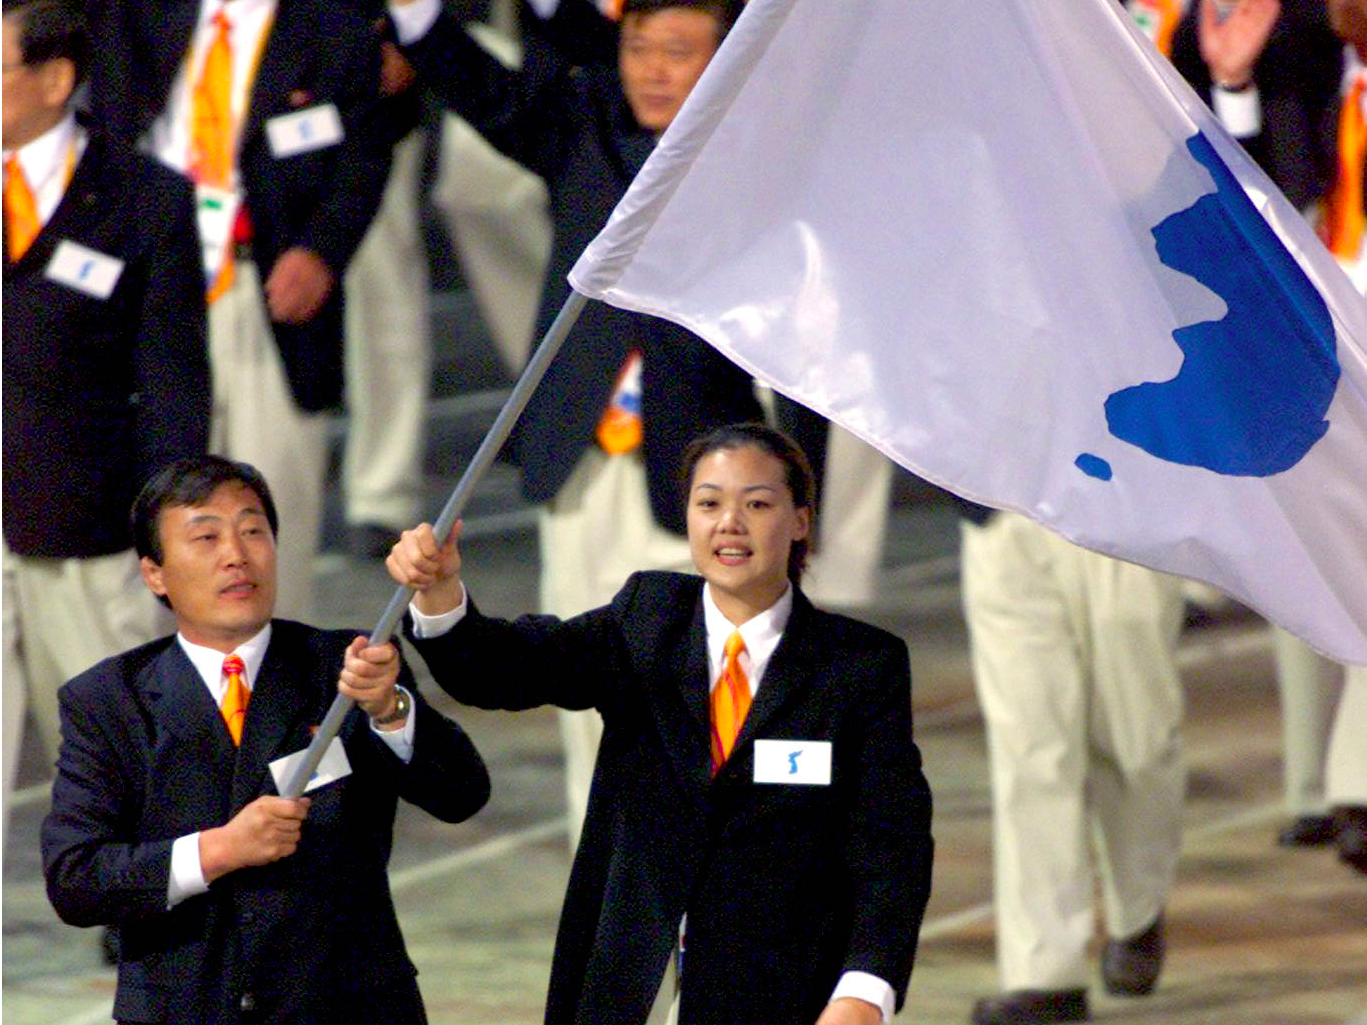 Sydney, 2000: For the first time in Olympic history, North and South Korea walked together in the opening ceremony as a show of solidarity. They waved a flag showing a blue silhouette of Korea as opposed to their respective national flags.